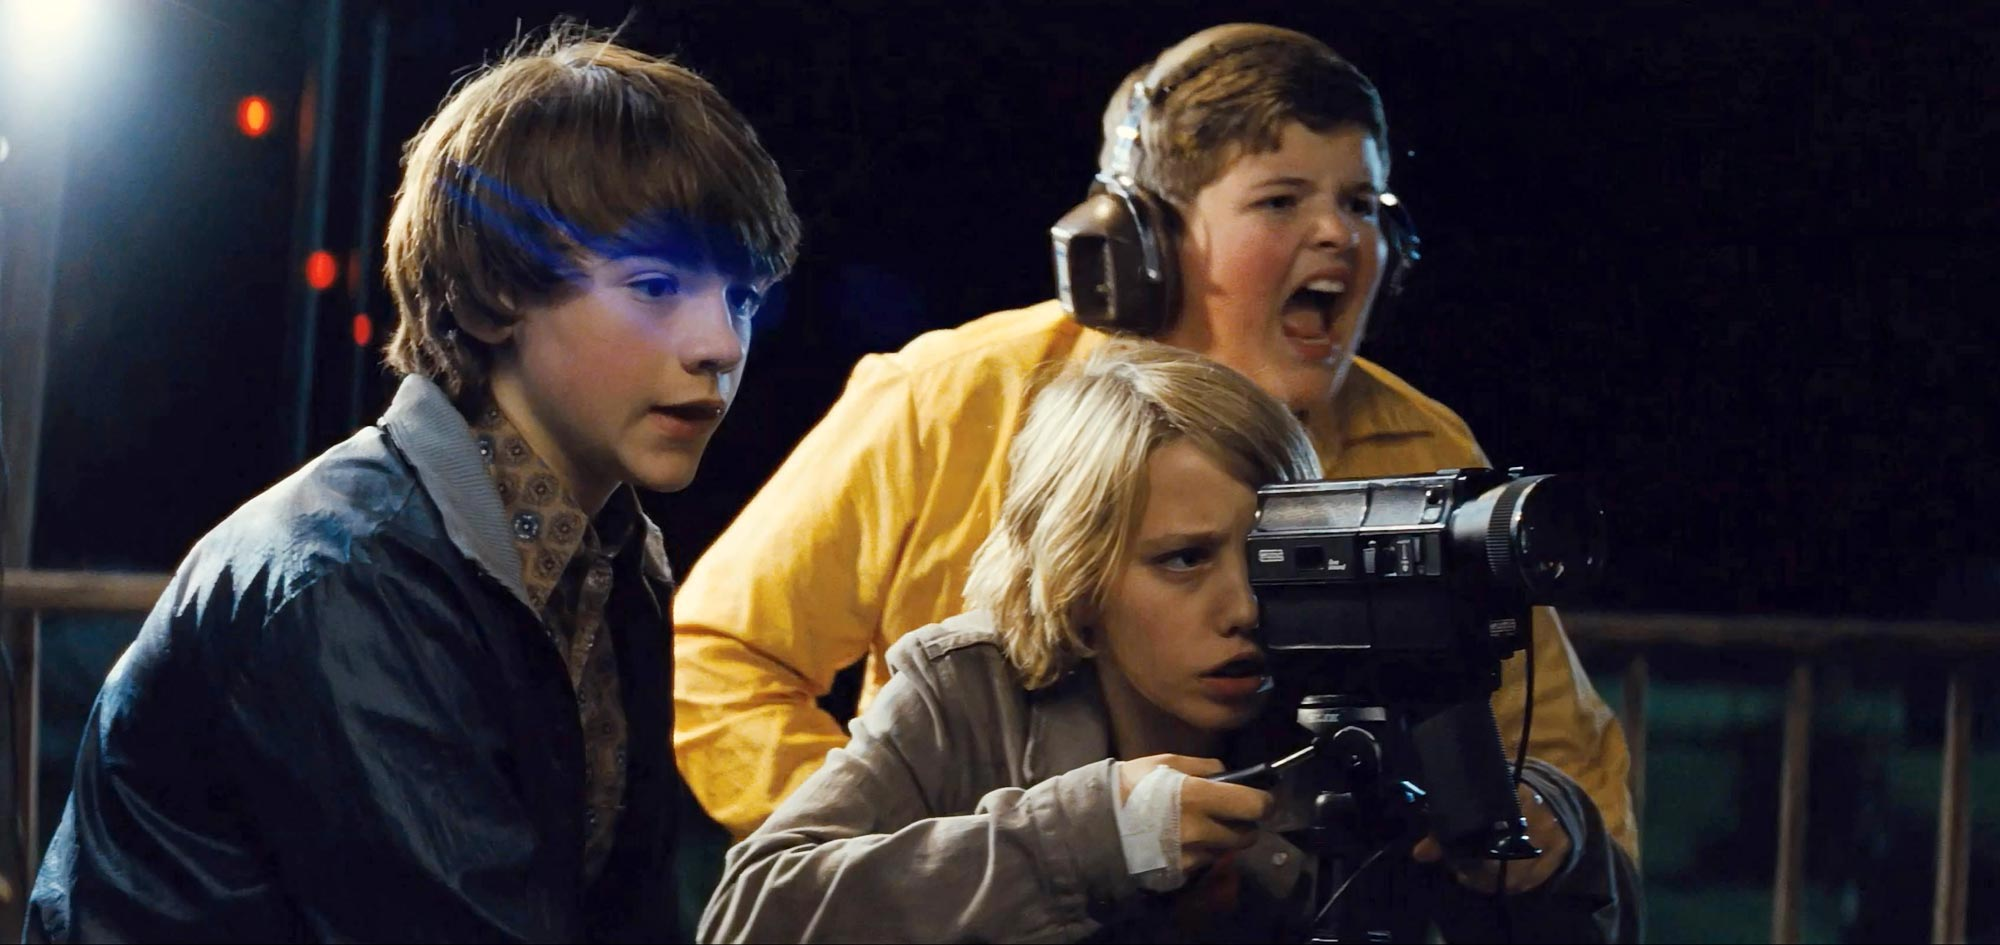 Kids making Super 8 films - Joel Courtney, Ryan Lee, Riley Griffiths in Super 8 (2011)